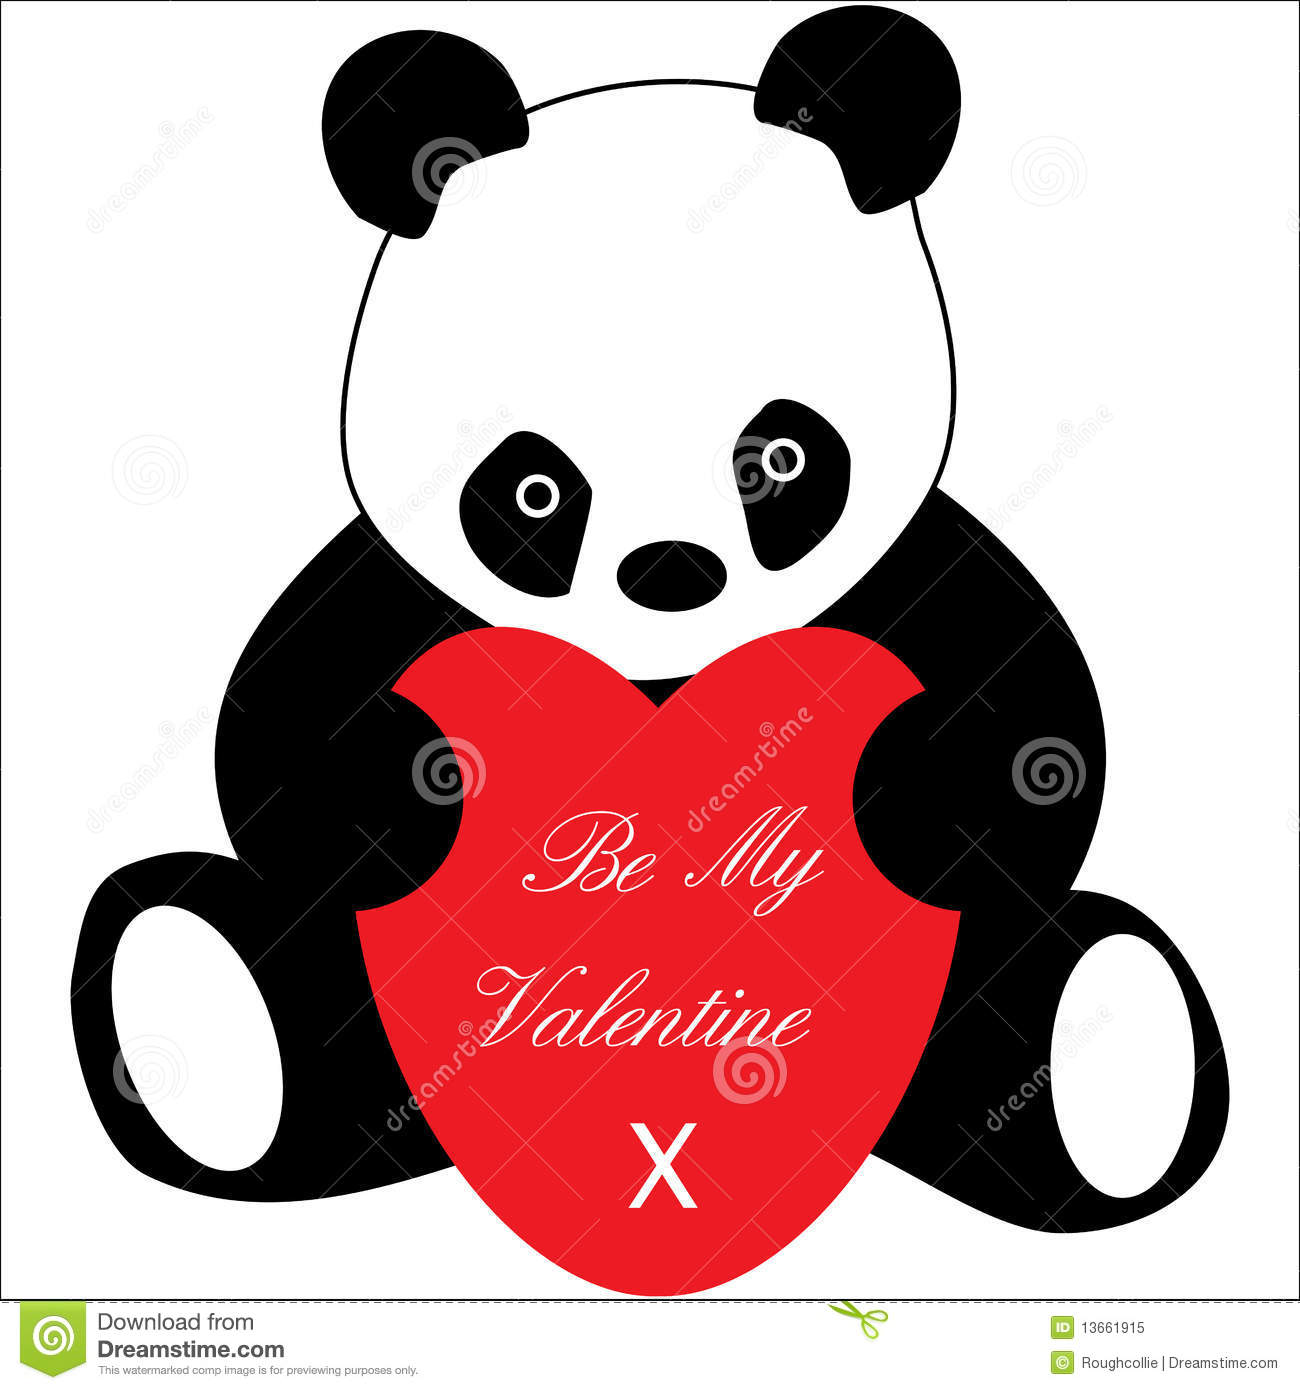 Ali 3d Name Wallpaper Free Download Panda With Love Heart Valentines Royalty Free Stock Photo